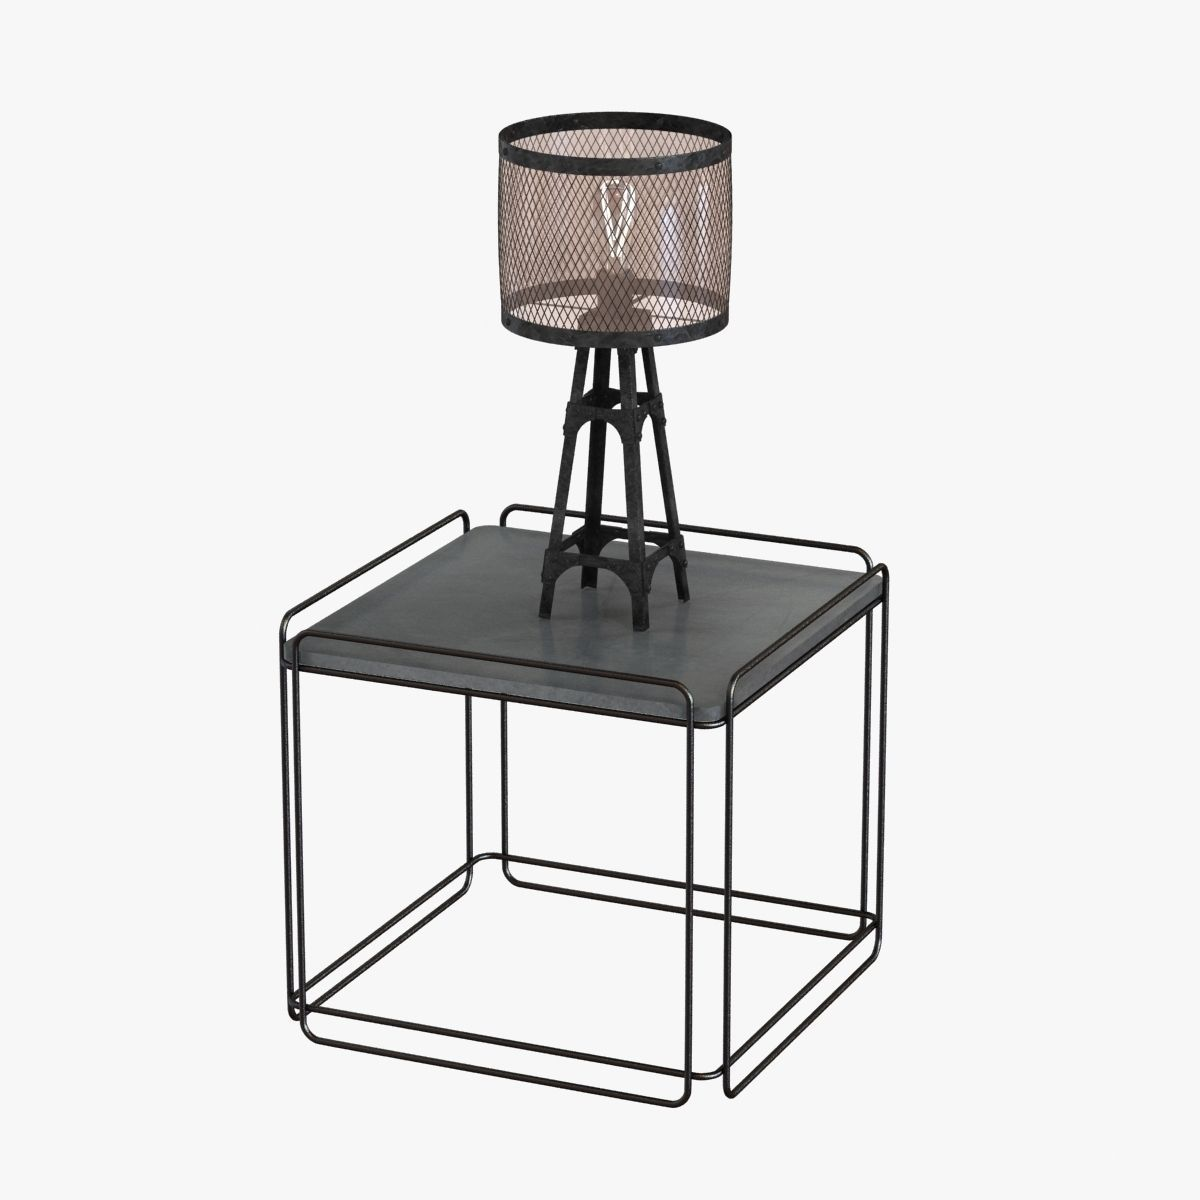 industrial table lamp on table 3d model max obj 3ds fbx mtl 1